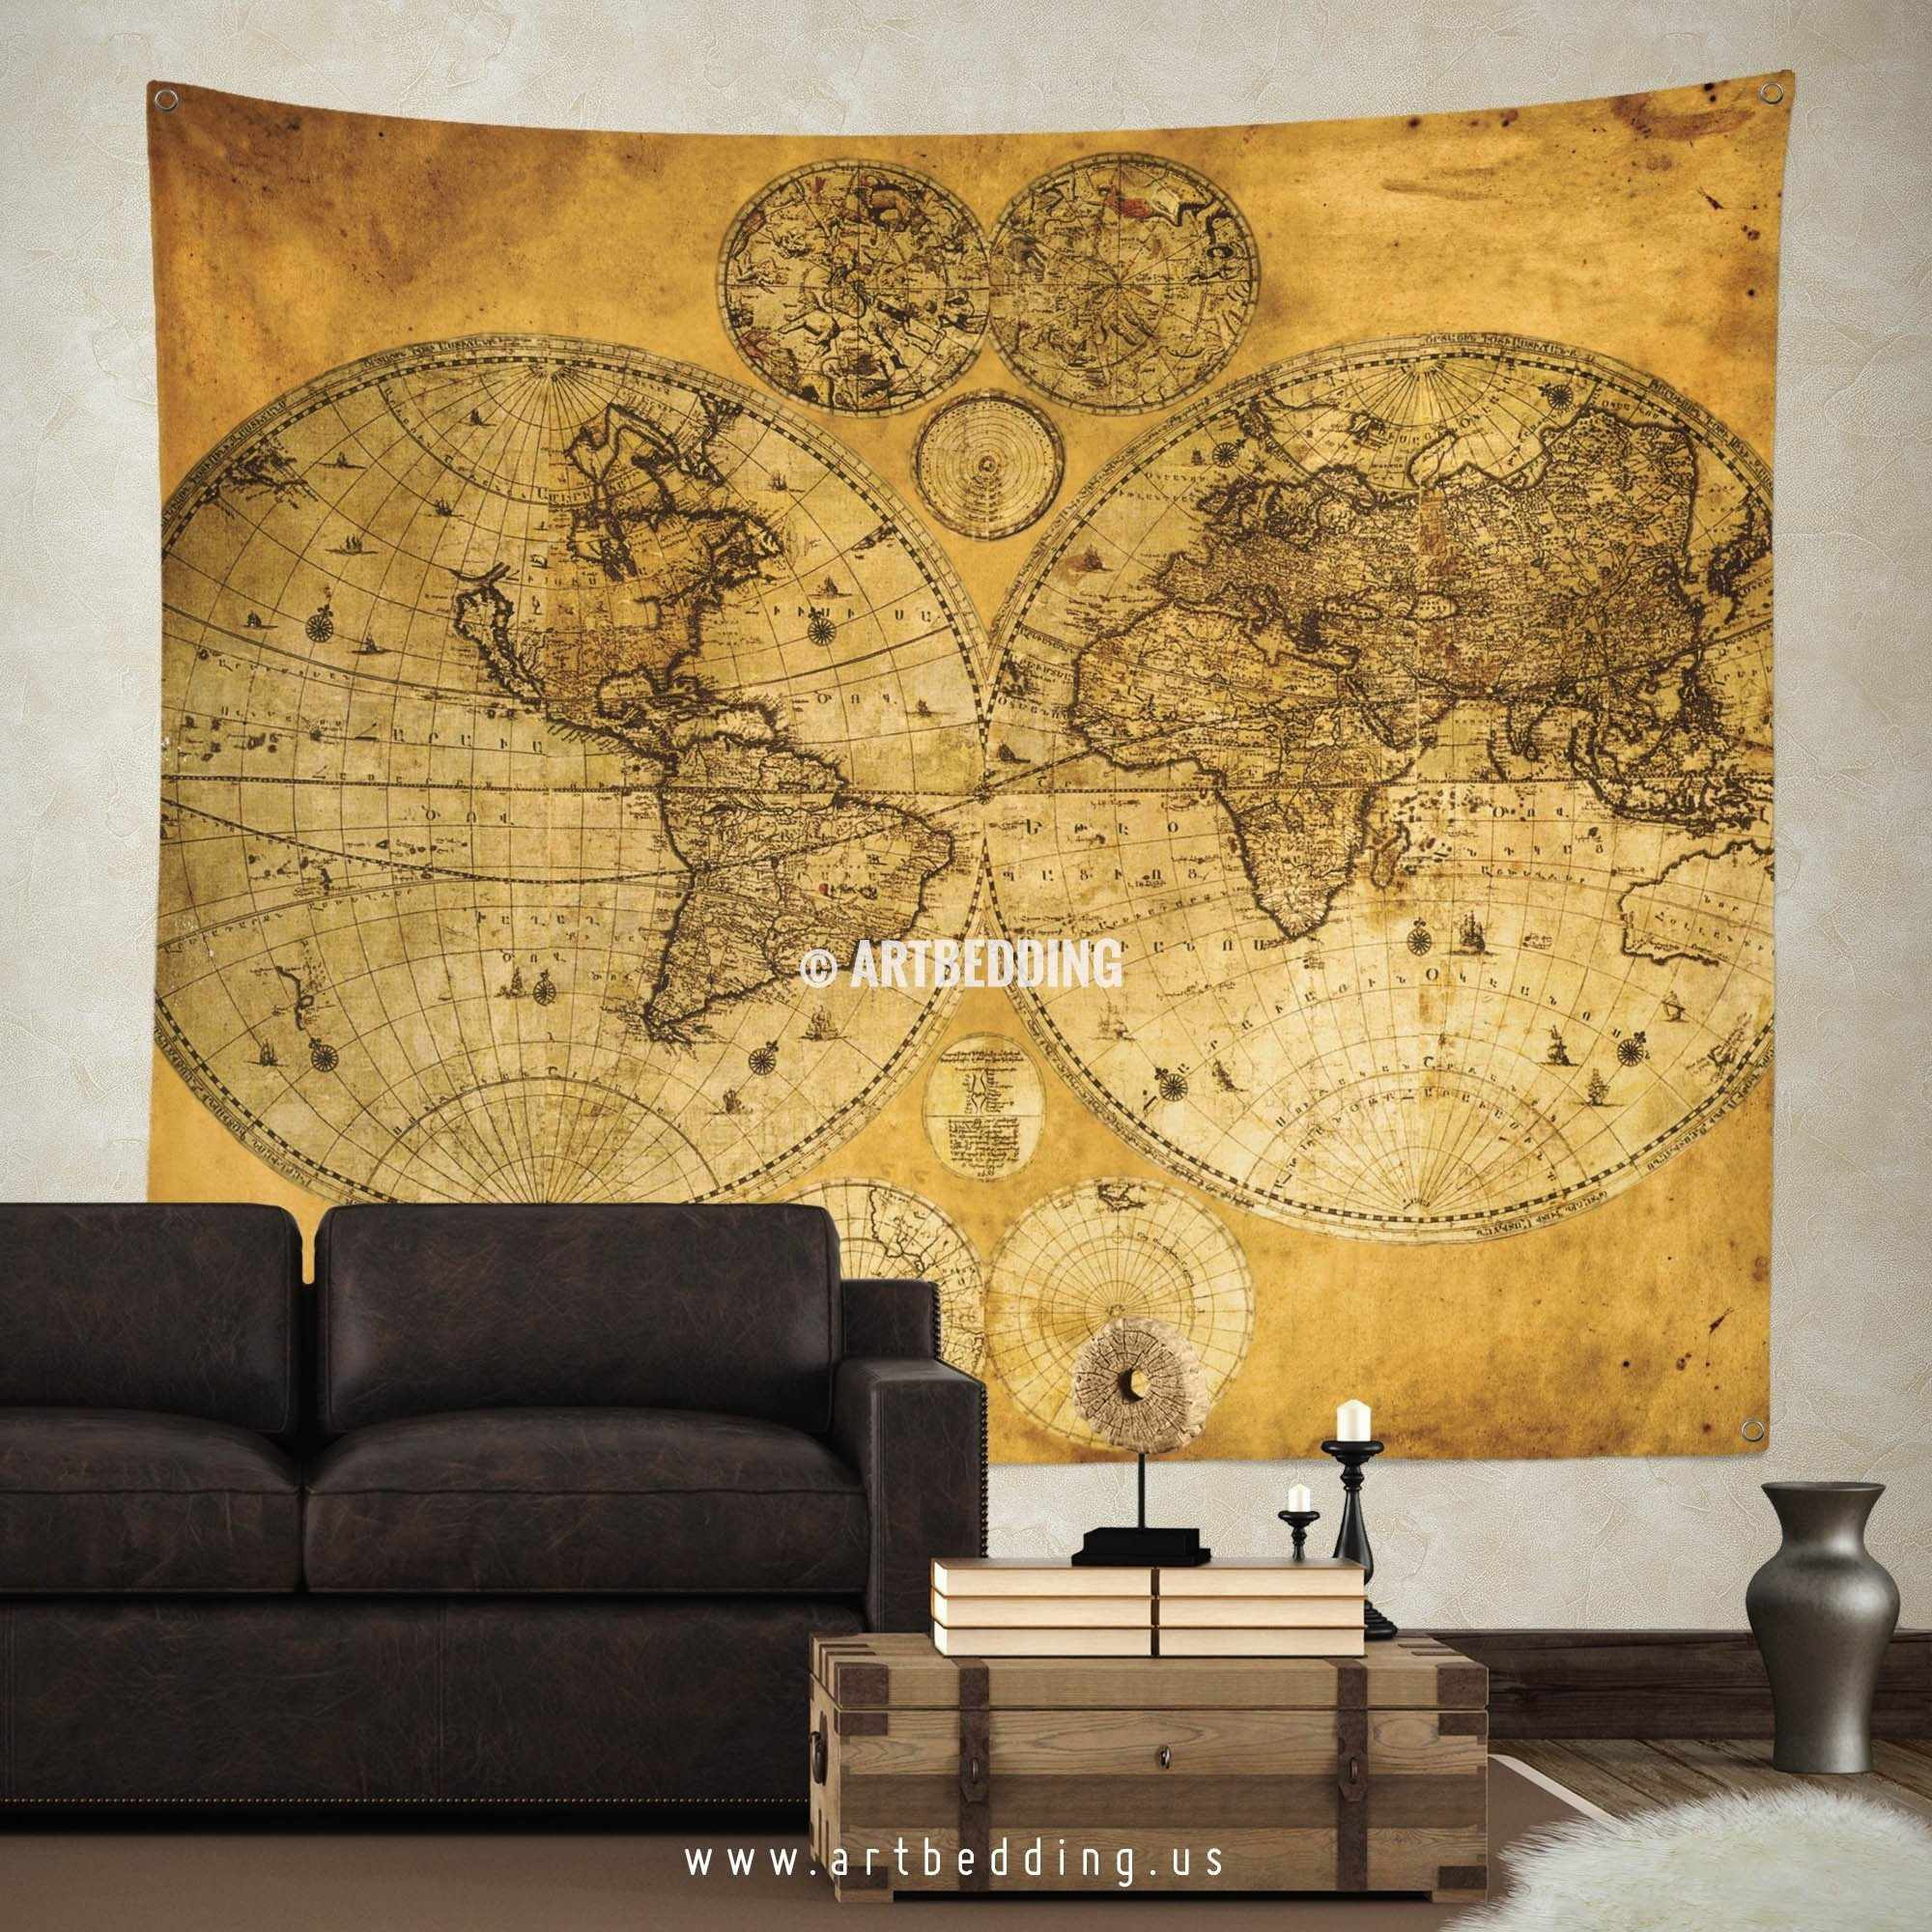 Vintage world map wall tapestry vintage interior world map wall old two hemispheres world map wall tapestry vintage interior world map wall hanging old gumiabroncs Gallery